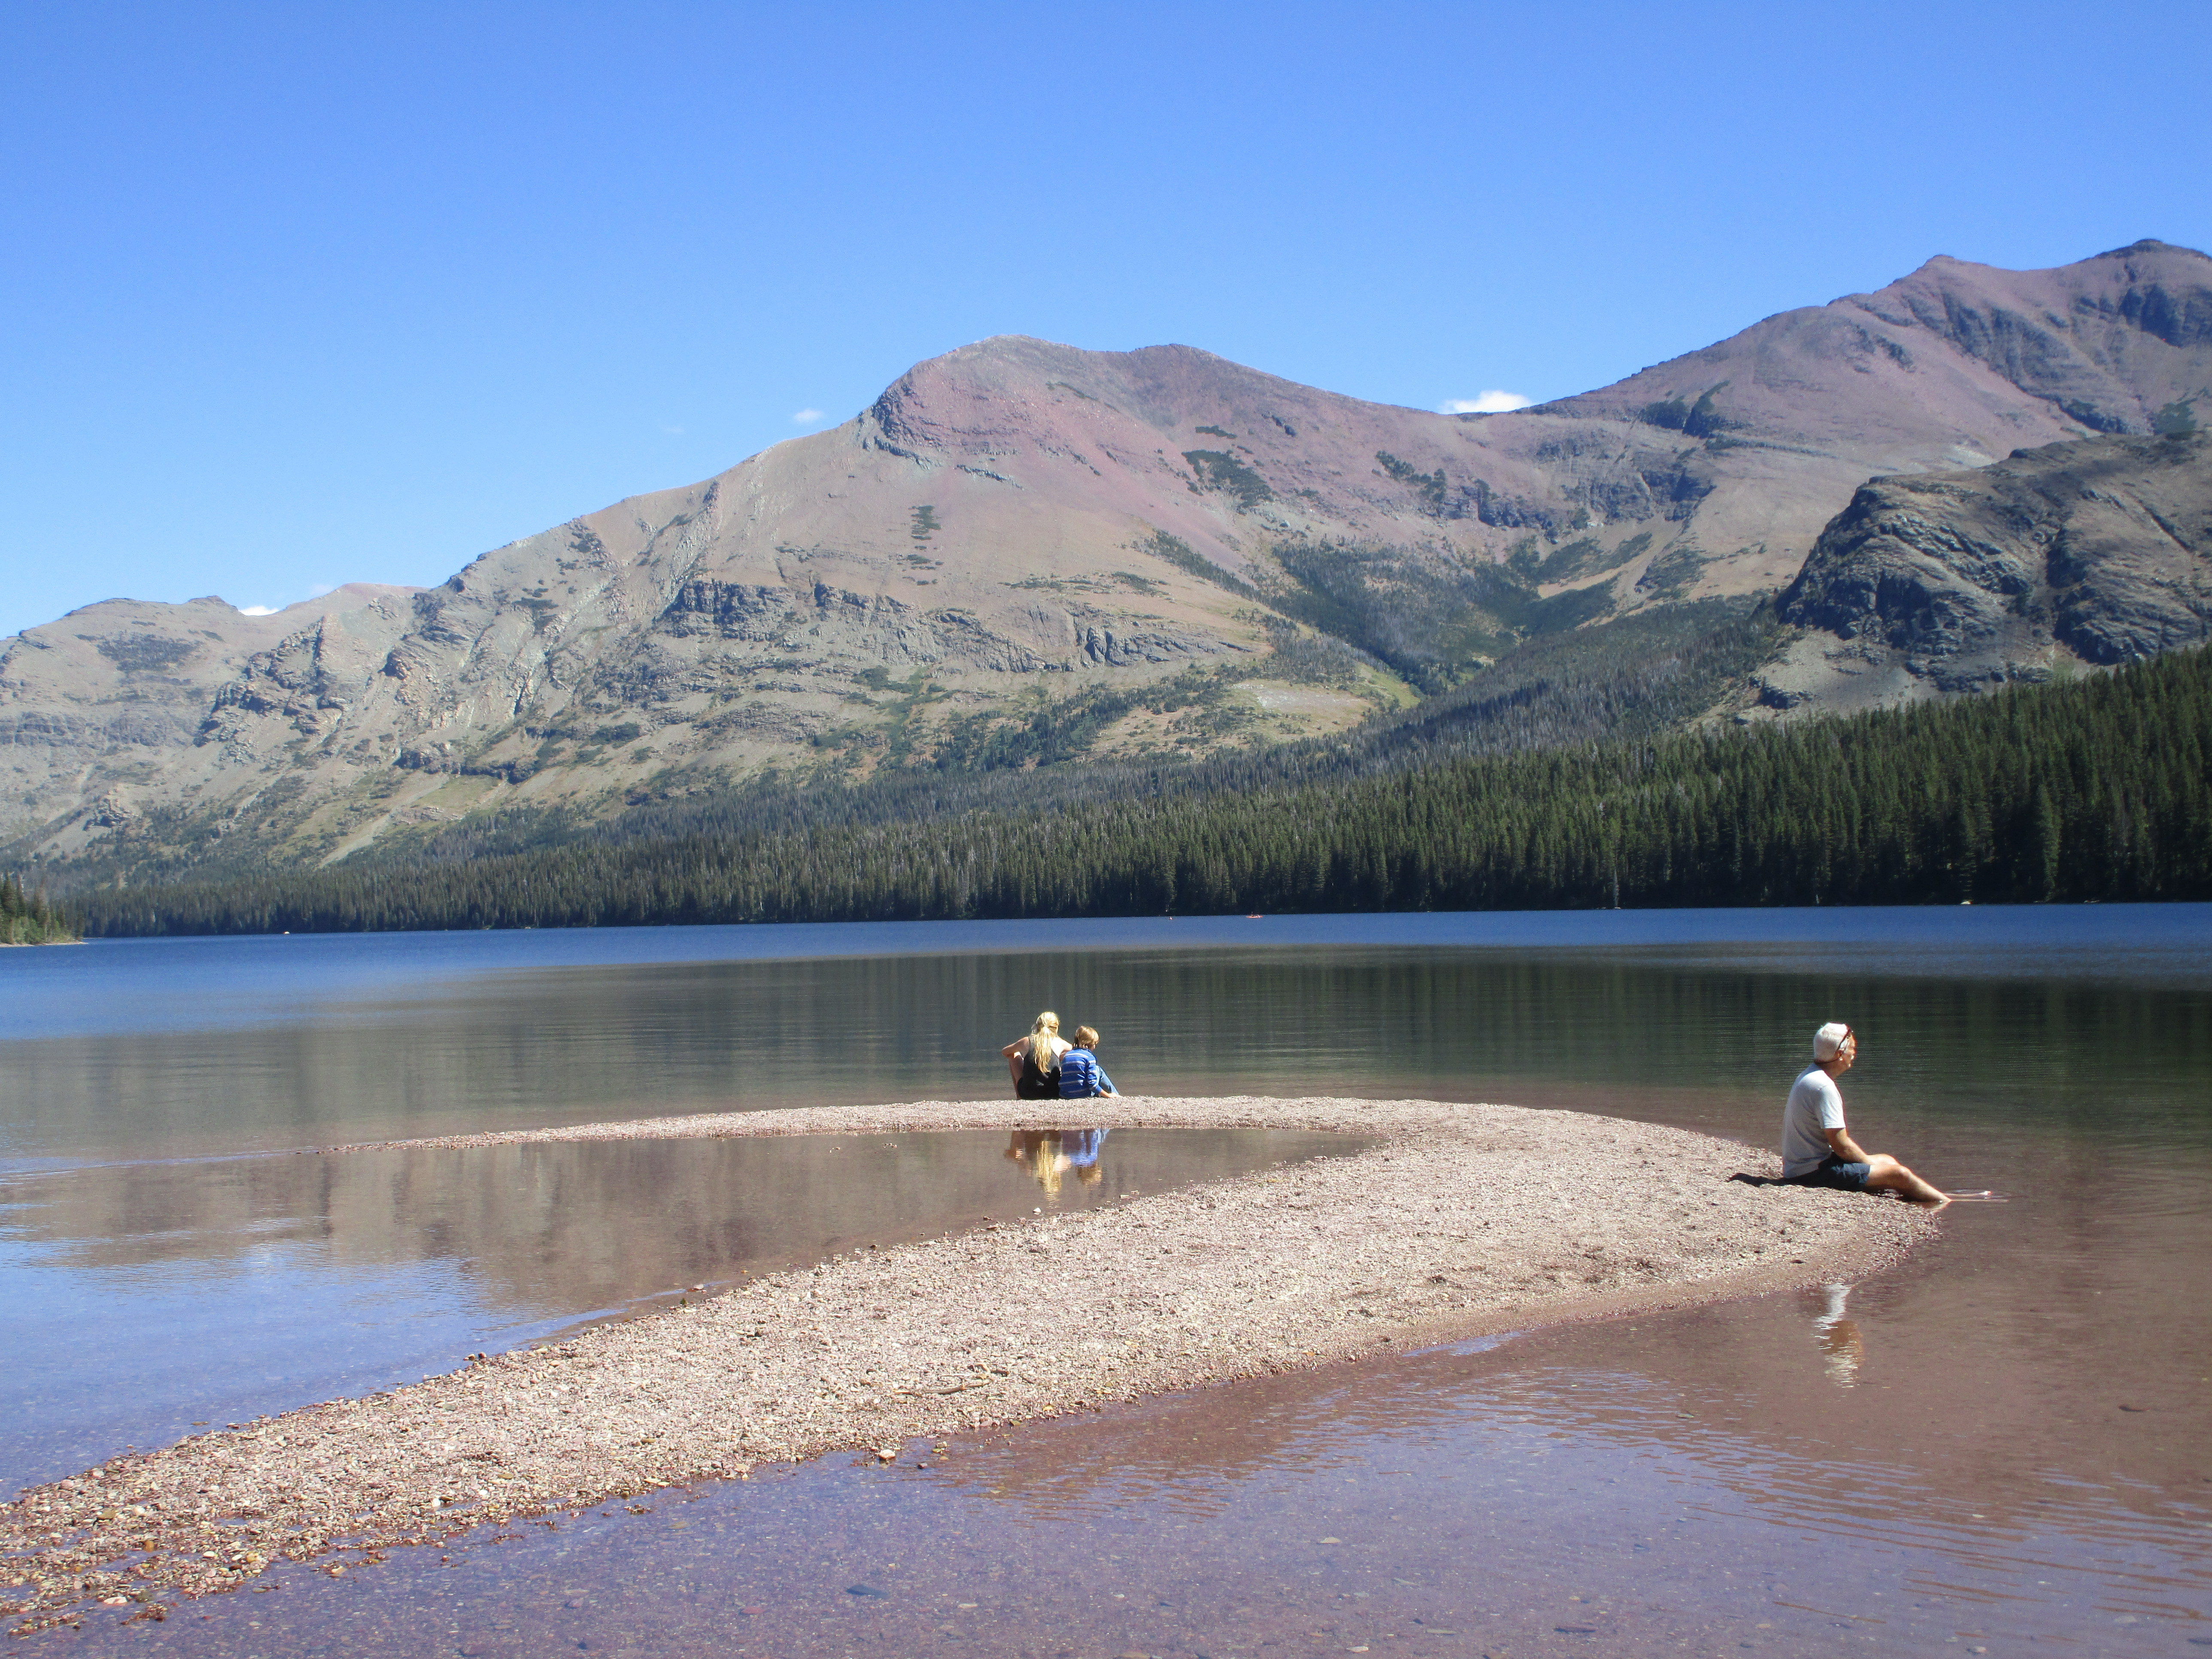 A quiet moment at Two Medicine Lake in Glacier National Park